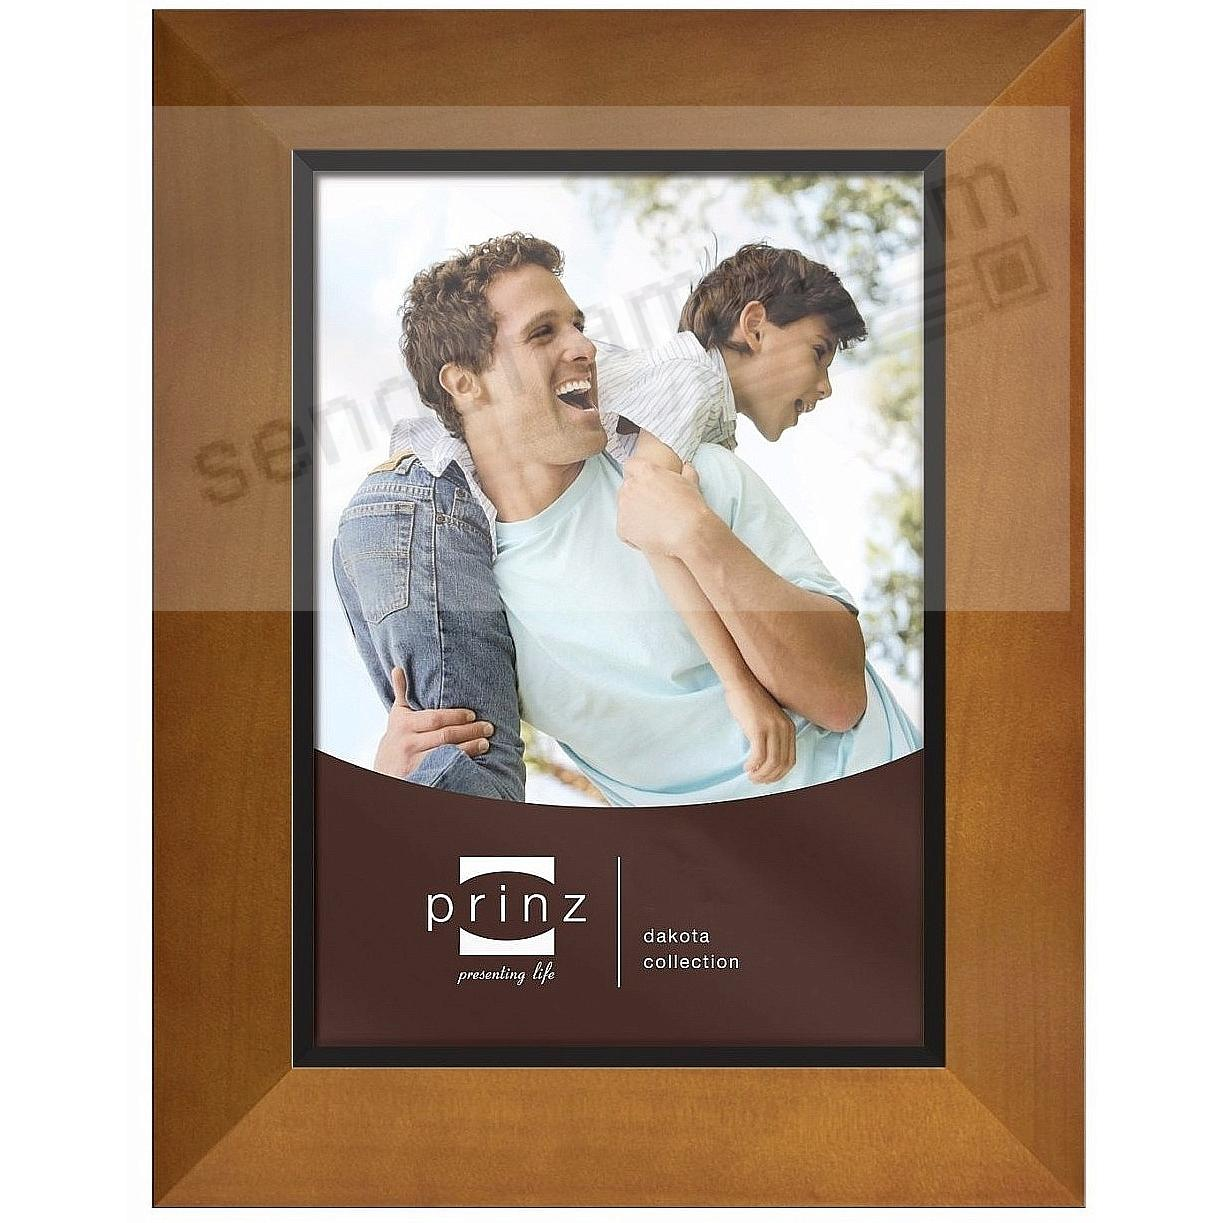 DAKOTA walnut 8x12 frame from Prinz®